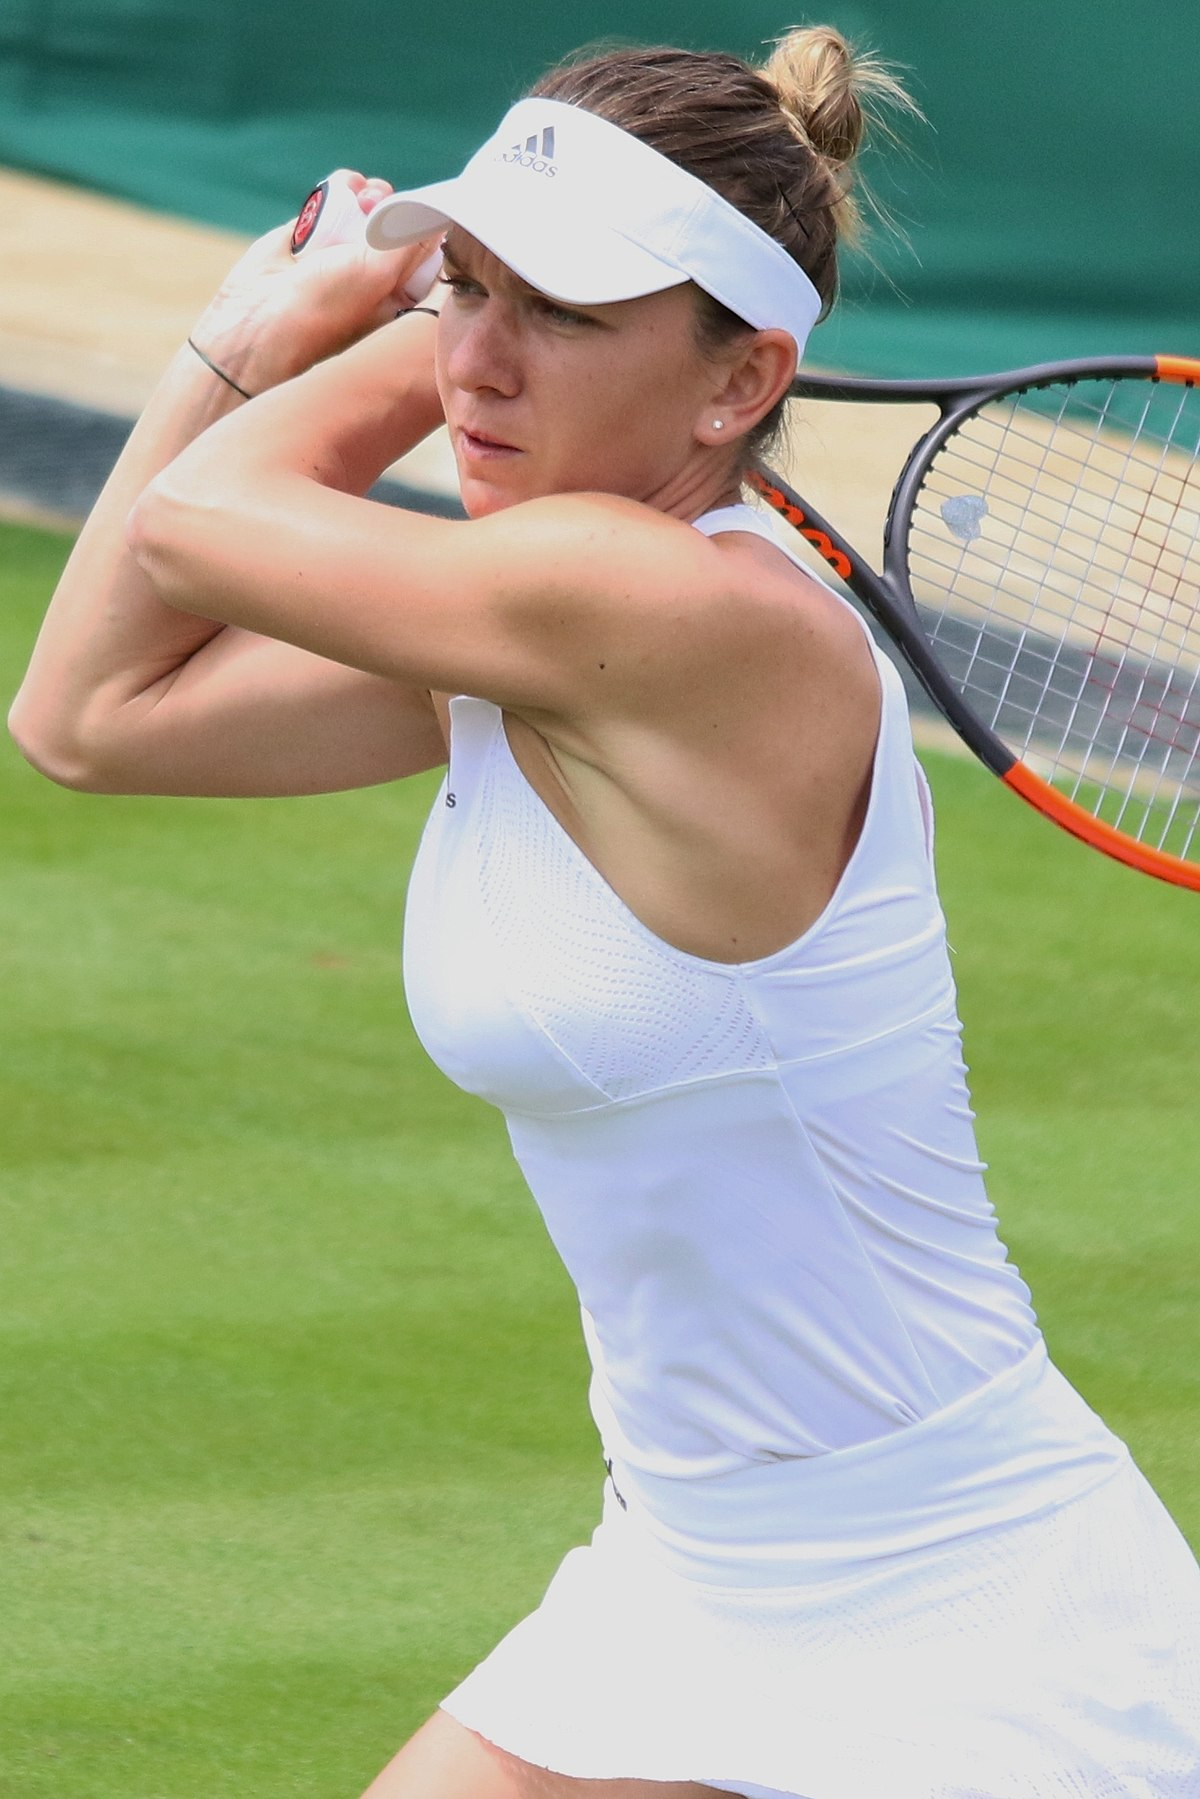 Simona halep wikipedia voltagebd Image collections